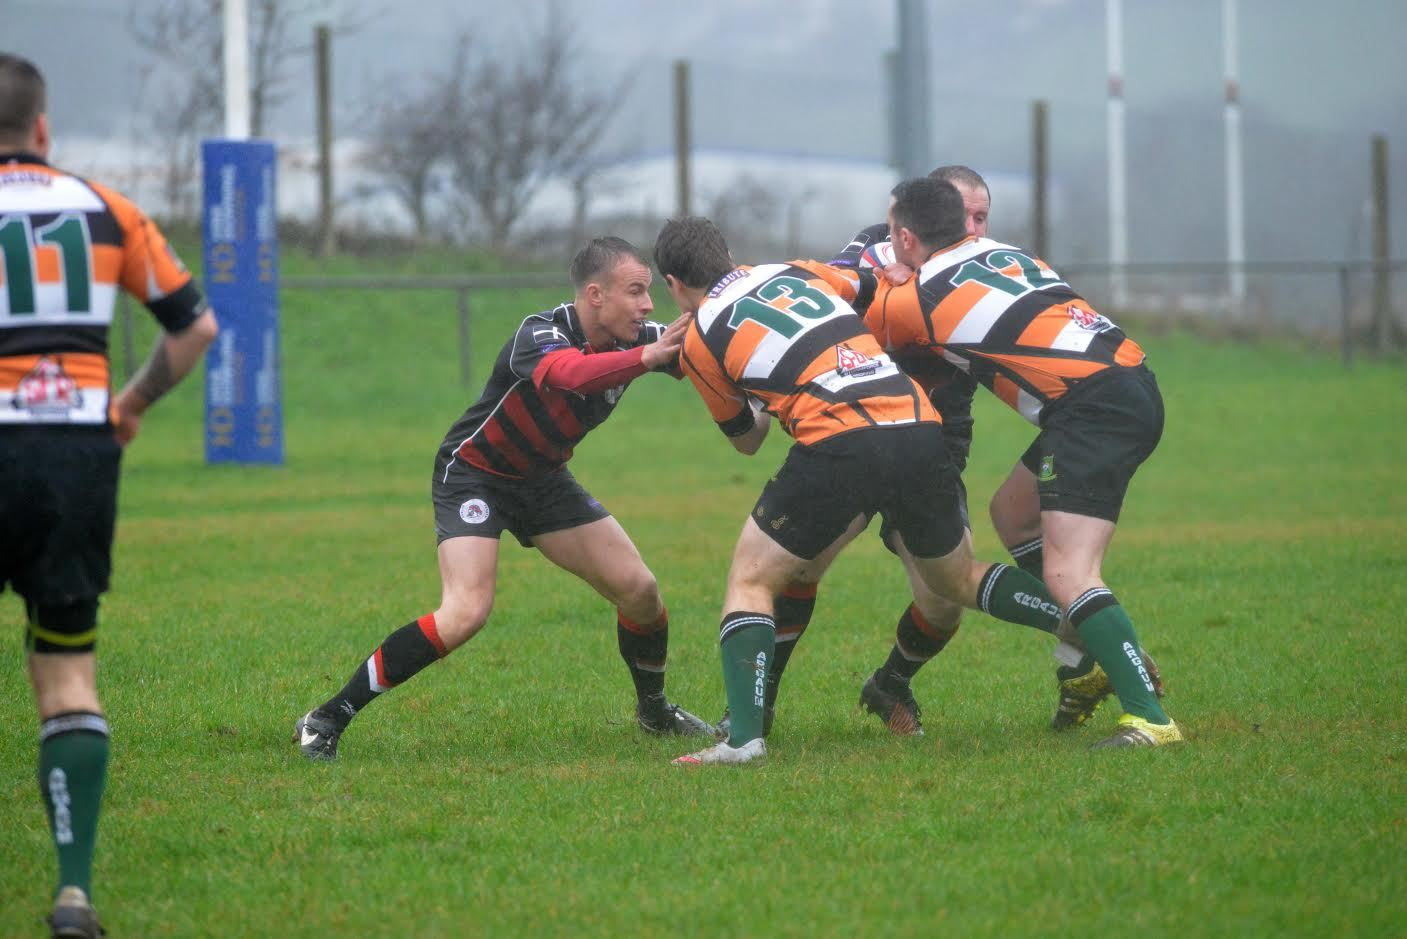 Mitchell Vague, who scored a try and landed seven conversions for Penryn against Torrington on Saturday